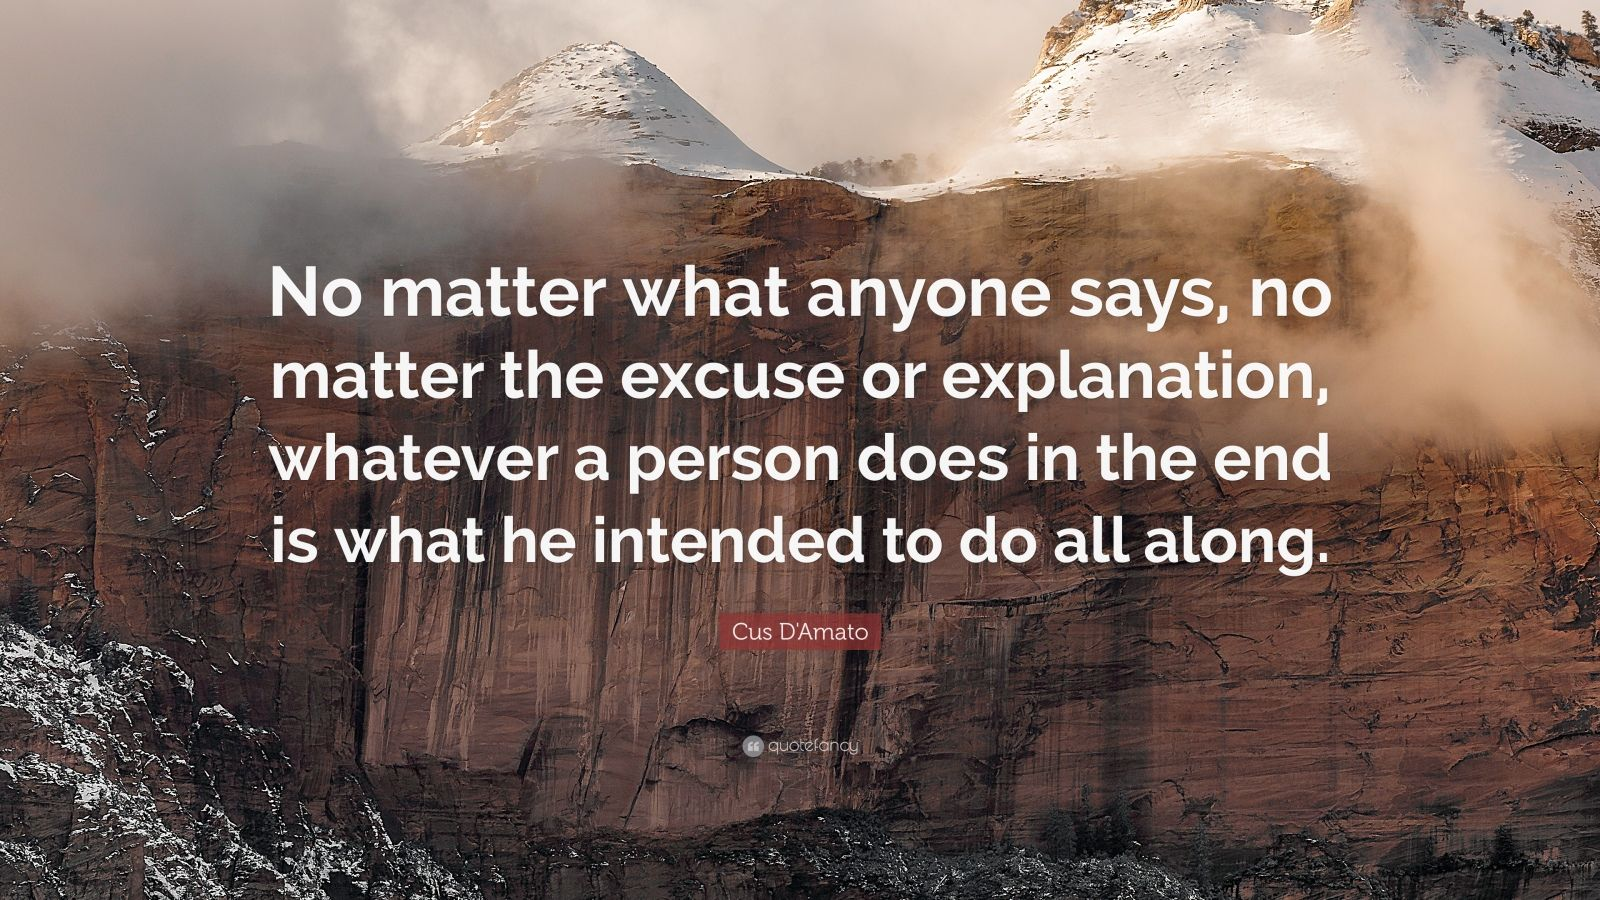 """Cus D'Amato Quote: """"No matter what anyone says, no matter the excuse or explanation, whatever a person does in the end is what he intended to do all along."""""""